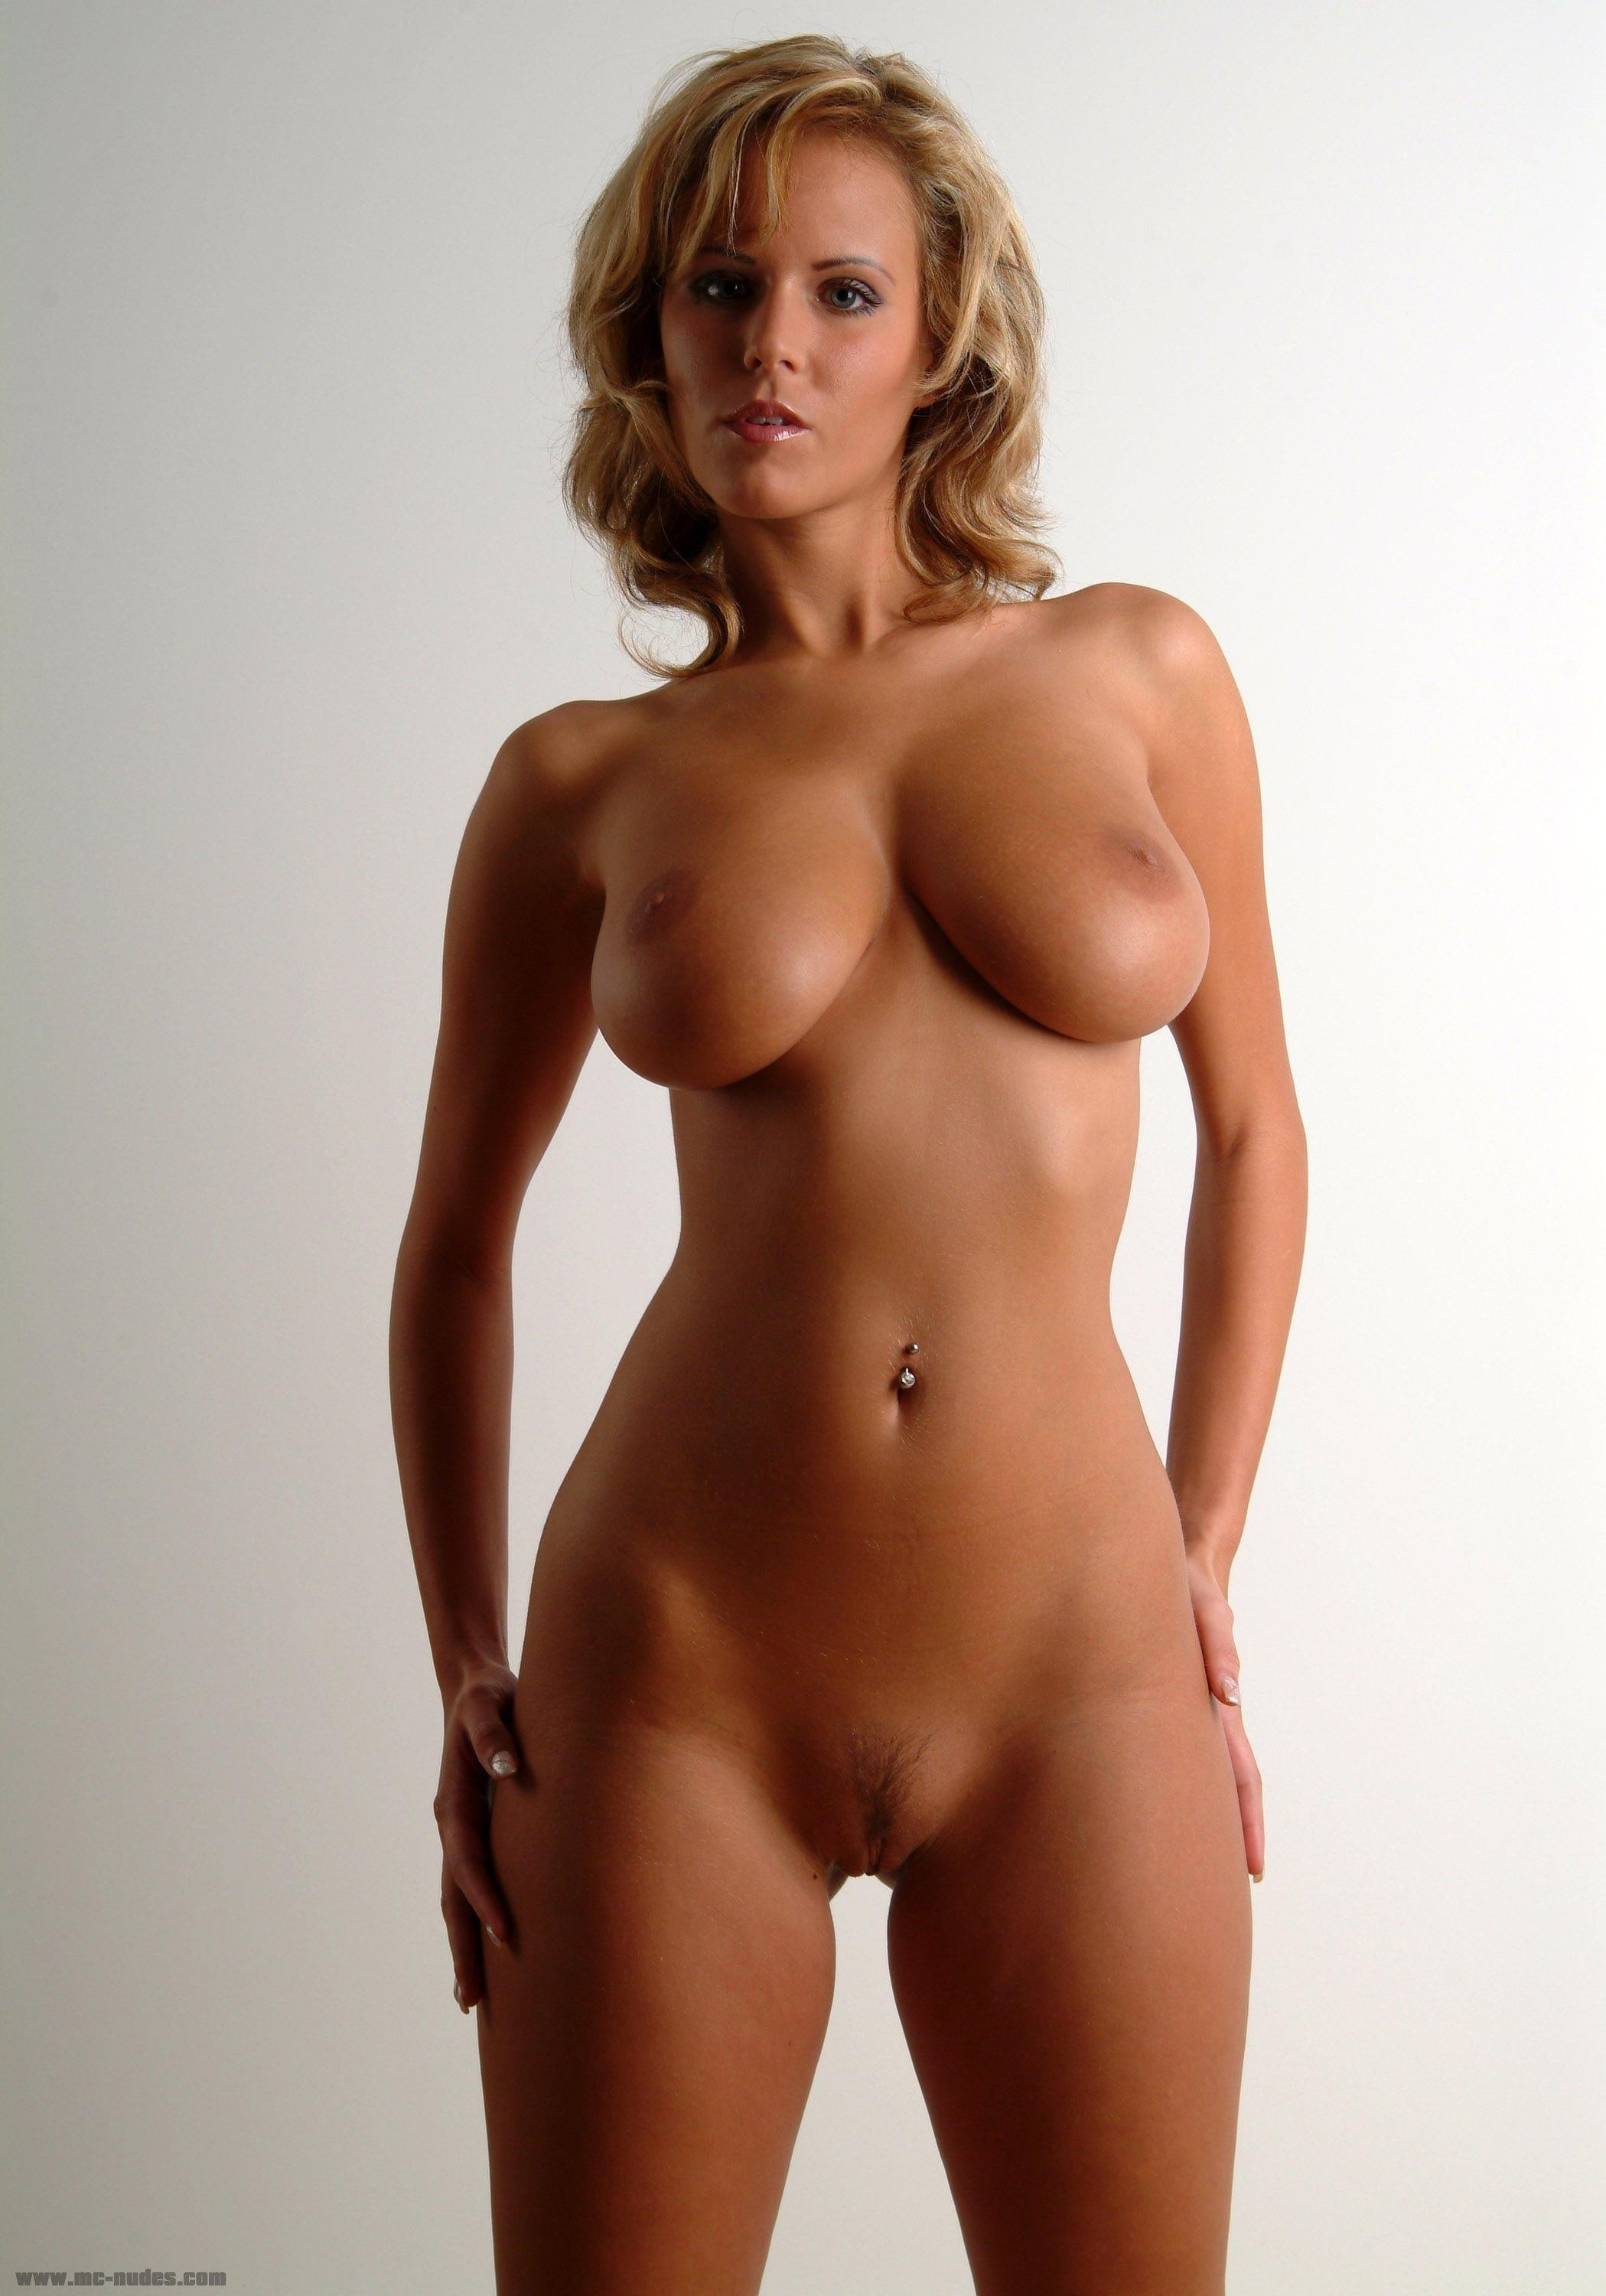 Naked moms perfect body — photo 12